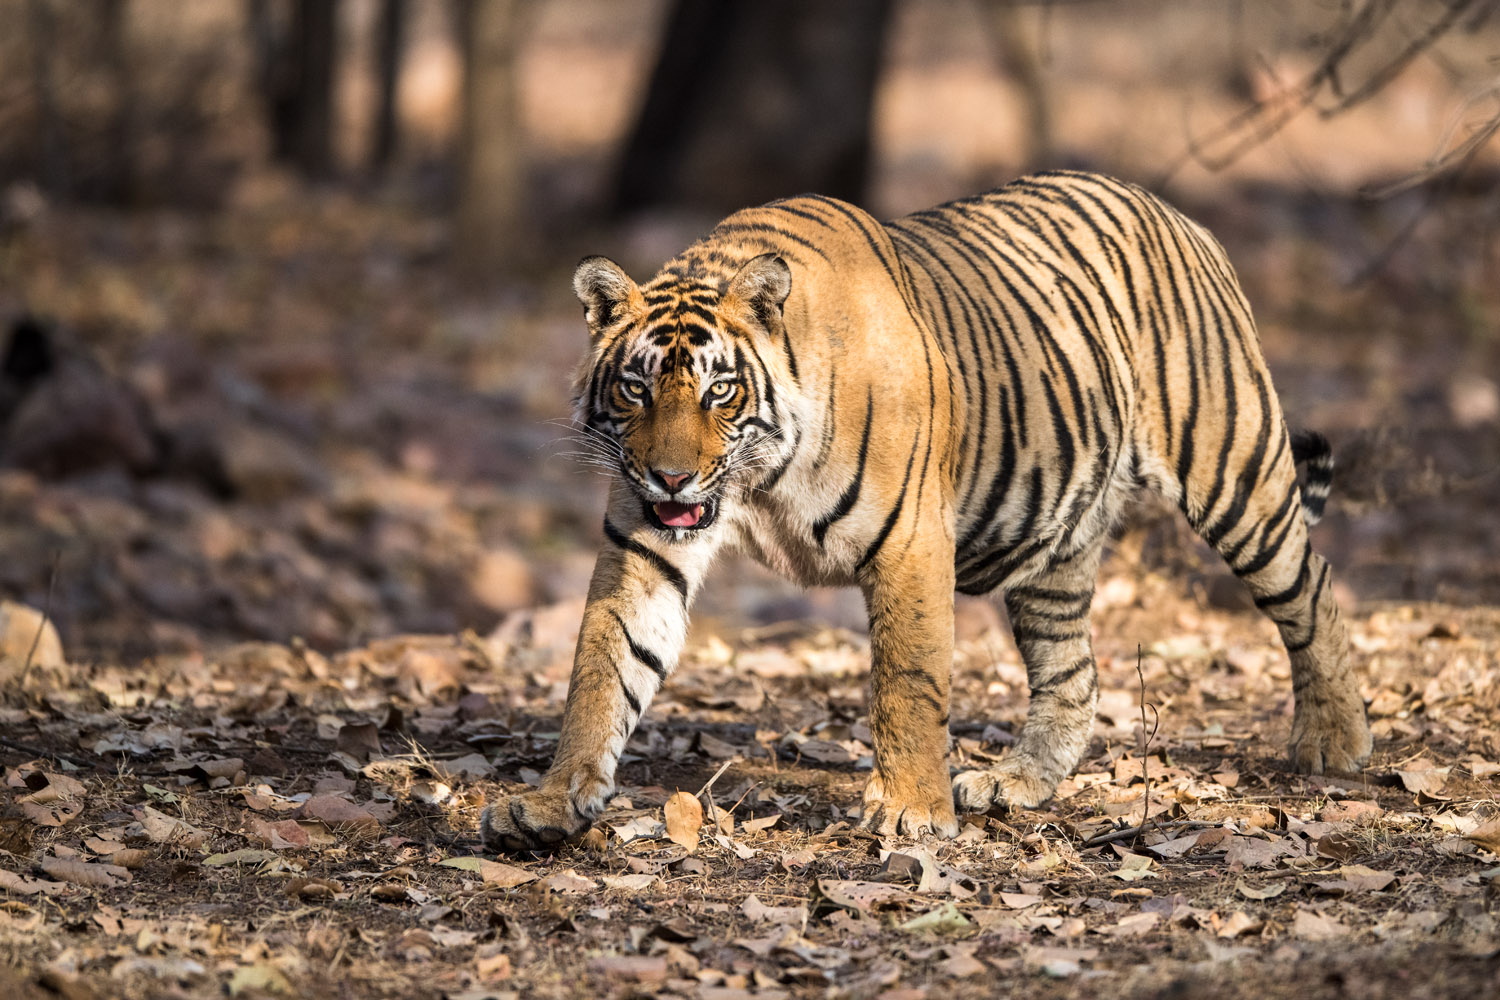 Bengal tiger on the move, Ranthambhore National Park, Rajasthan, India